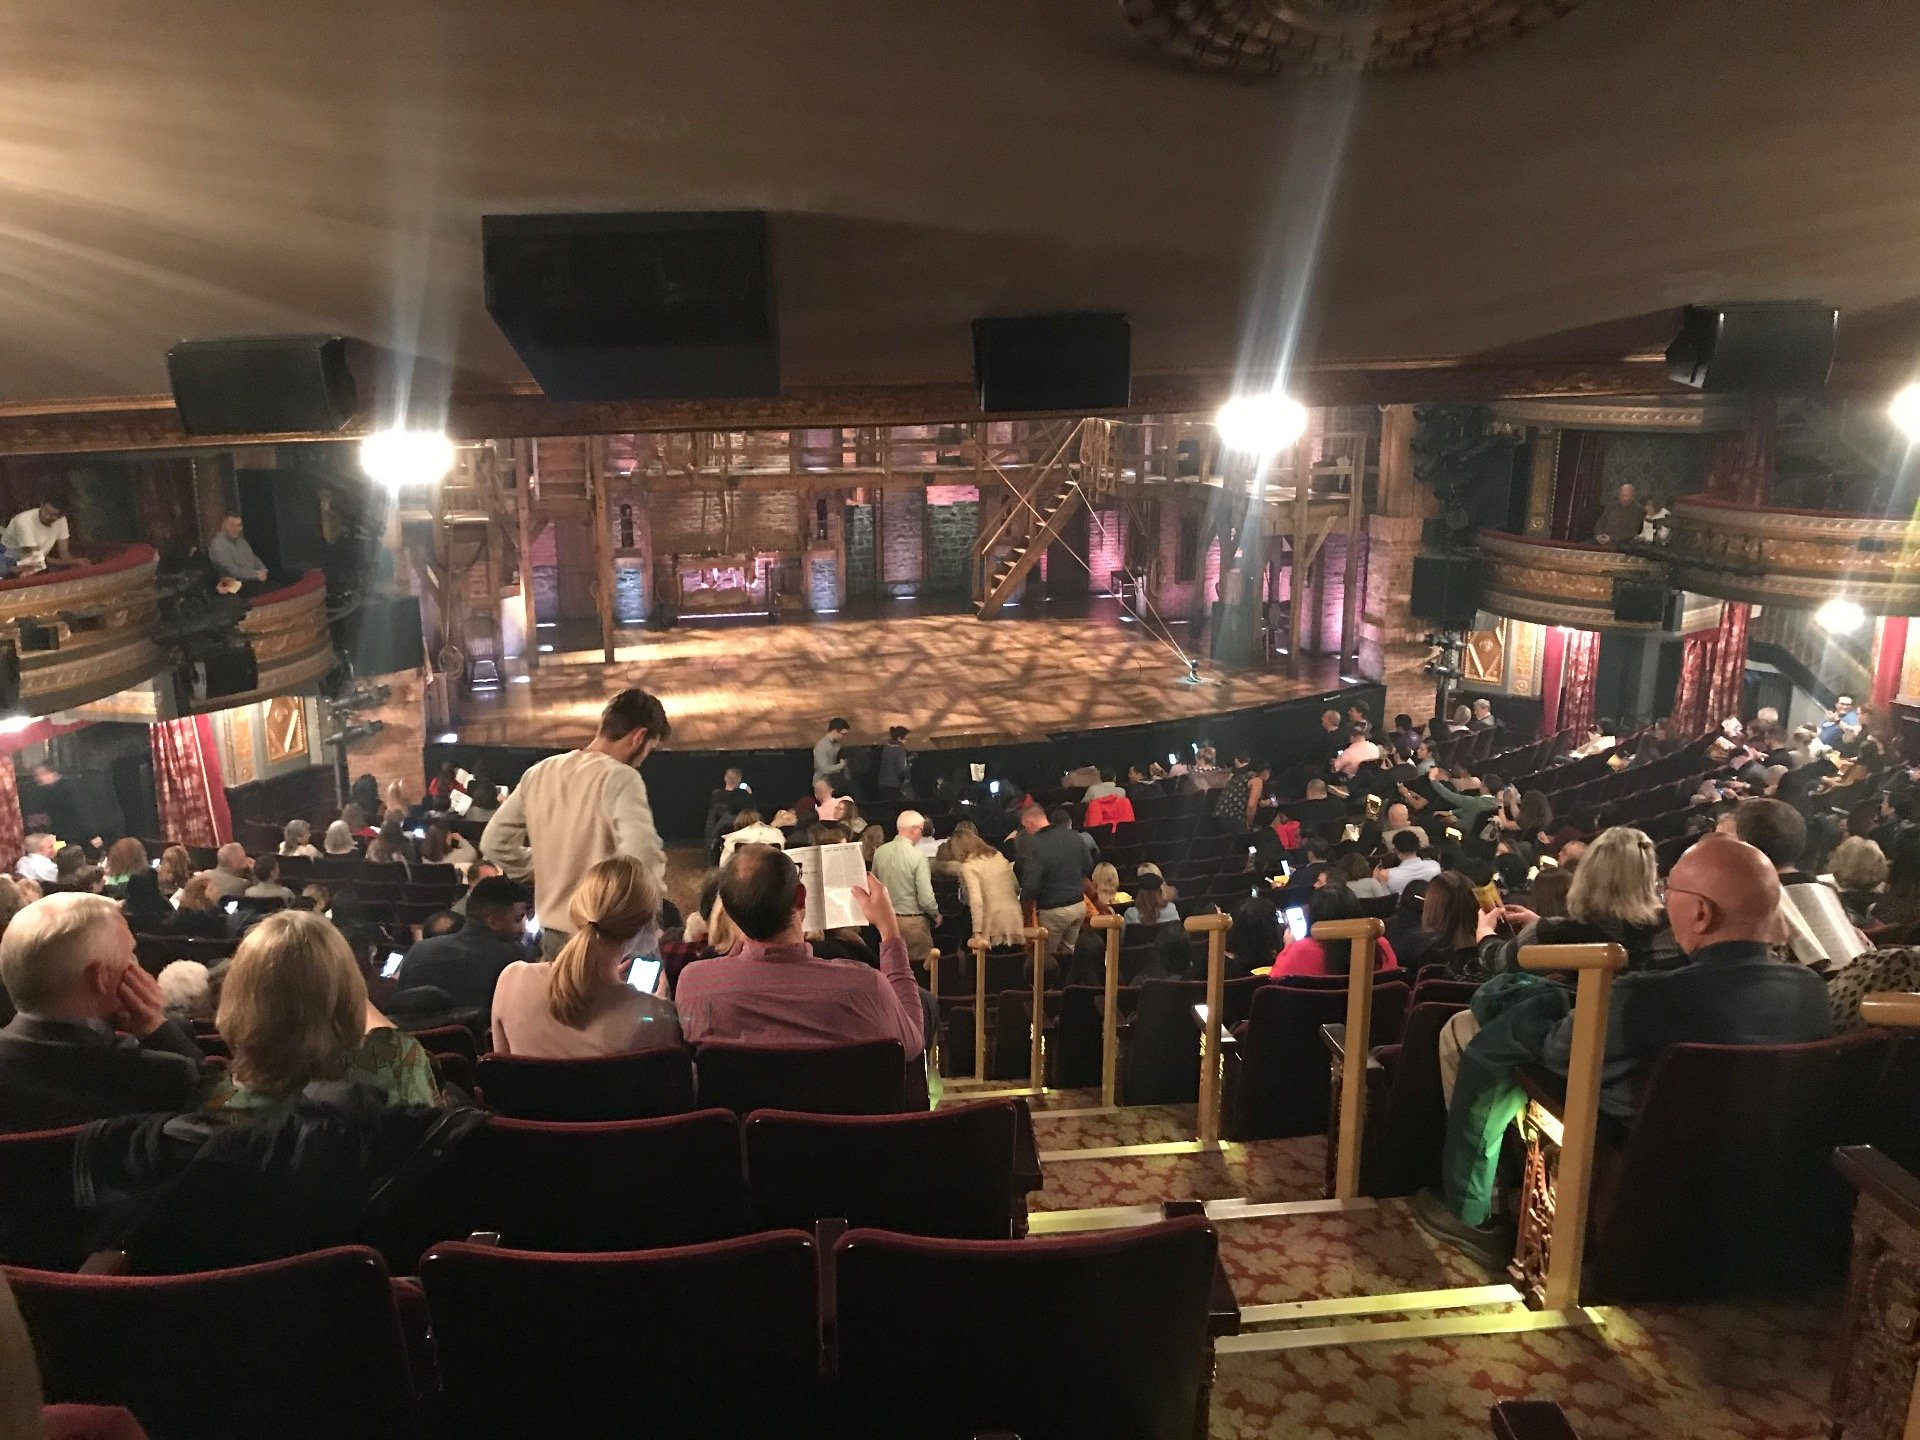 Richard Rodgers Theatre Section Orchestra L Row W Seat 3